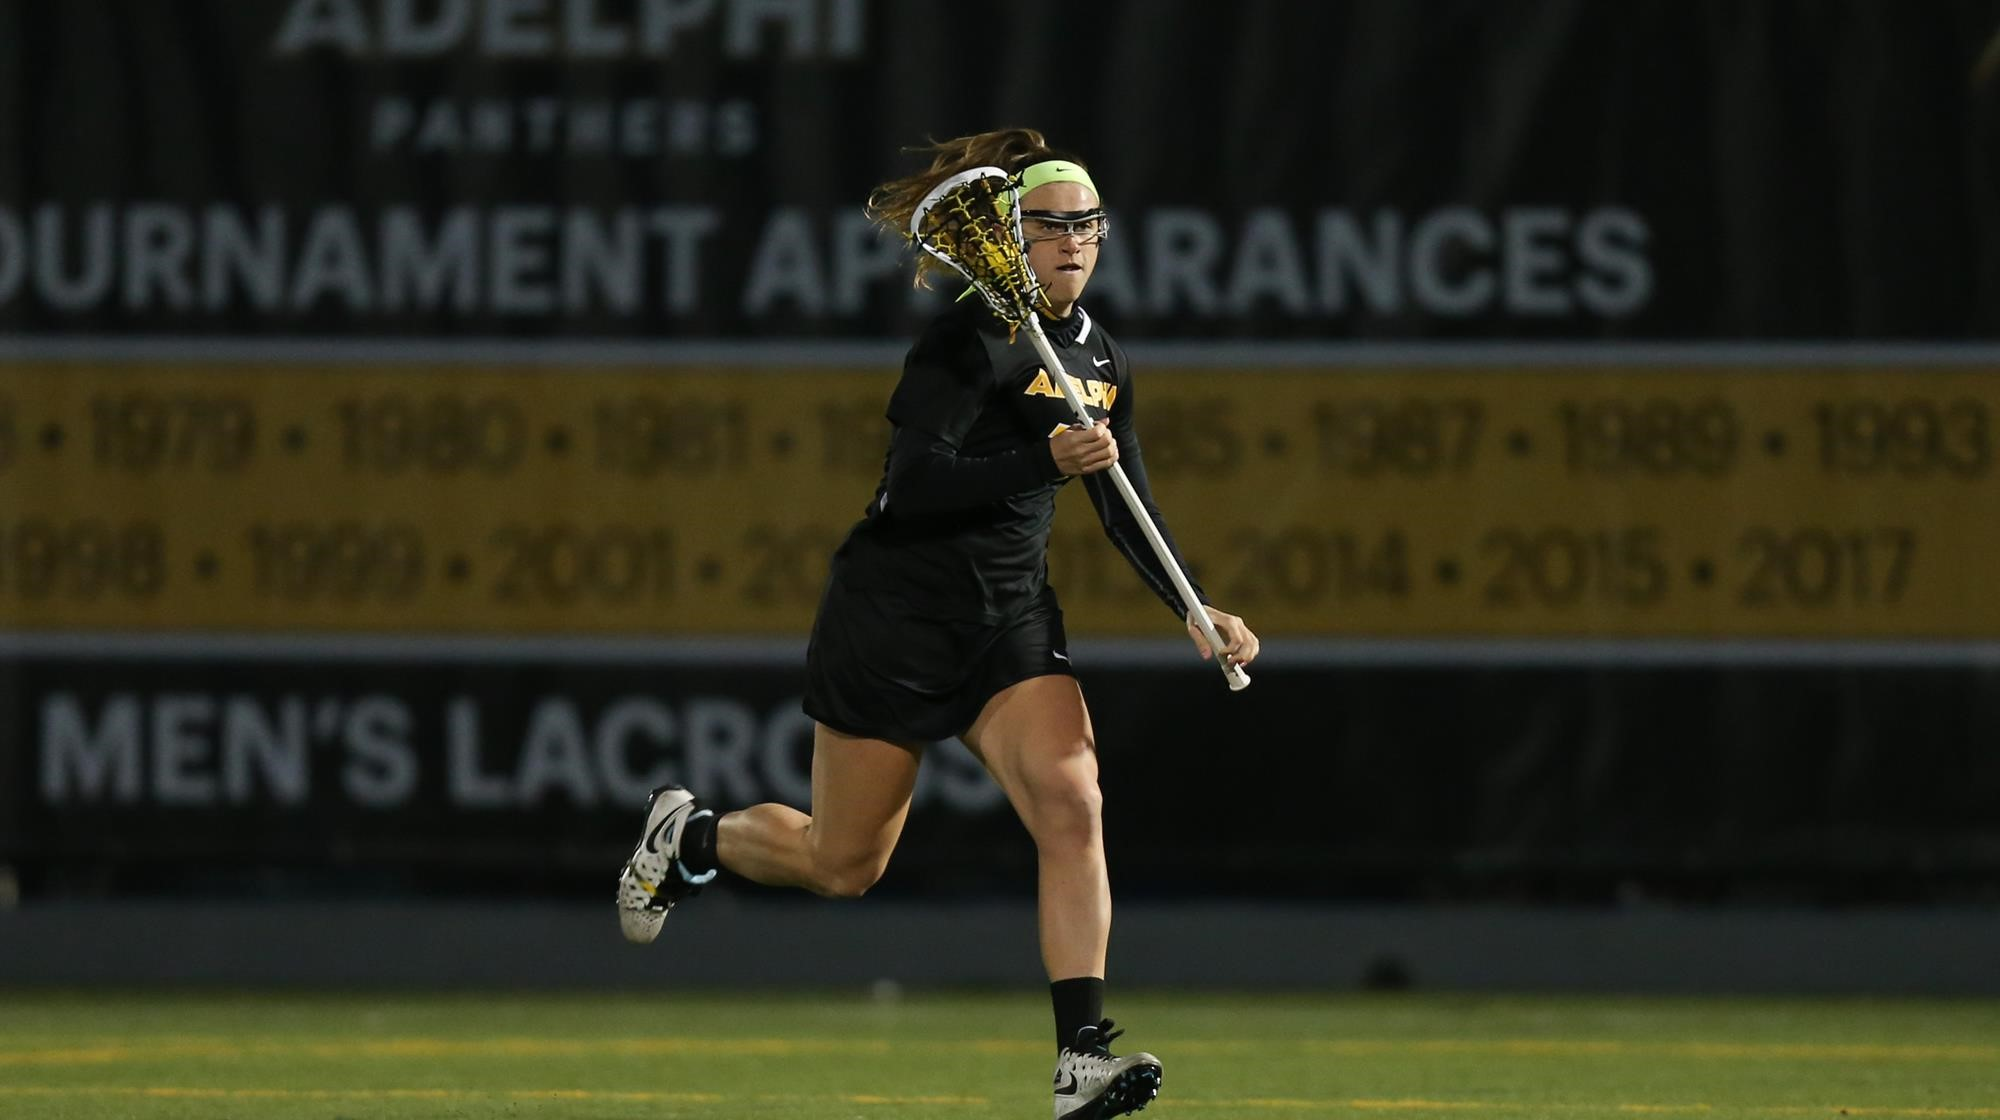 Adelphi University Athletics